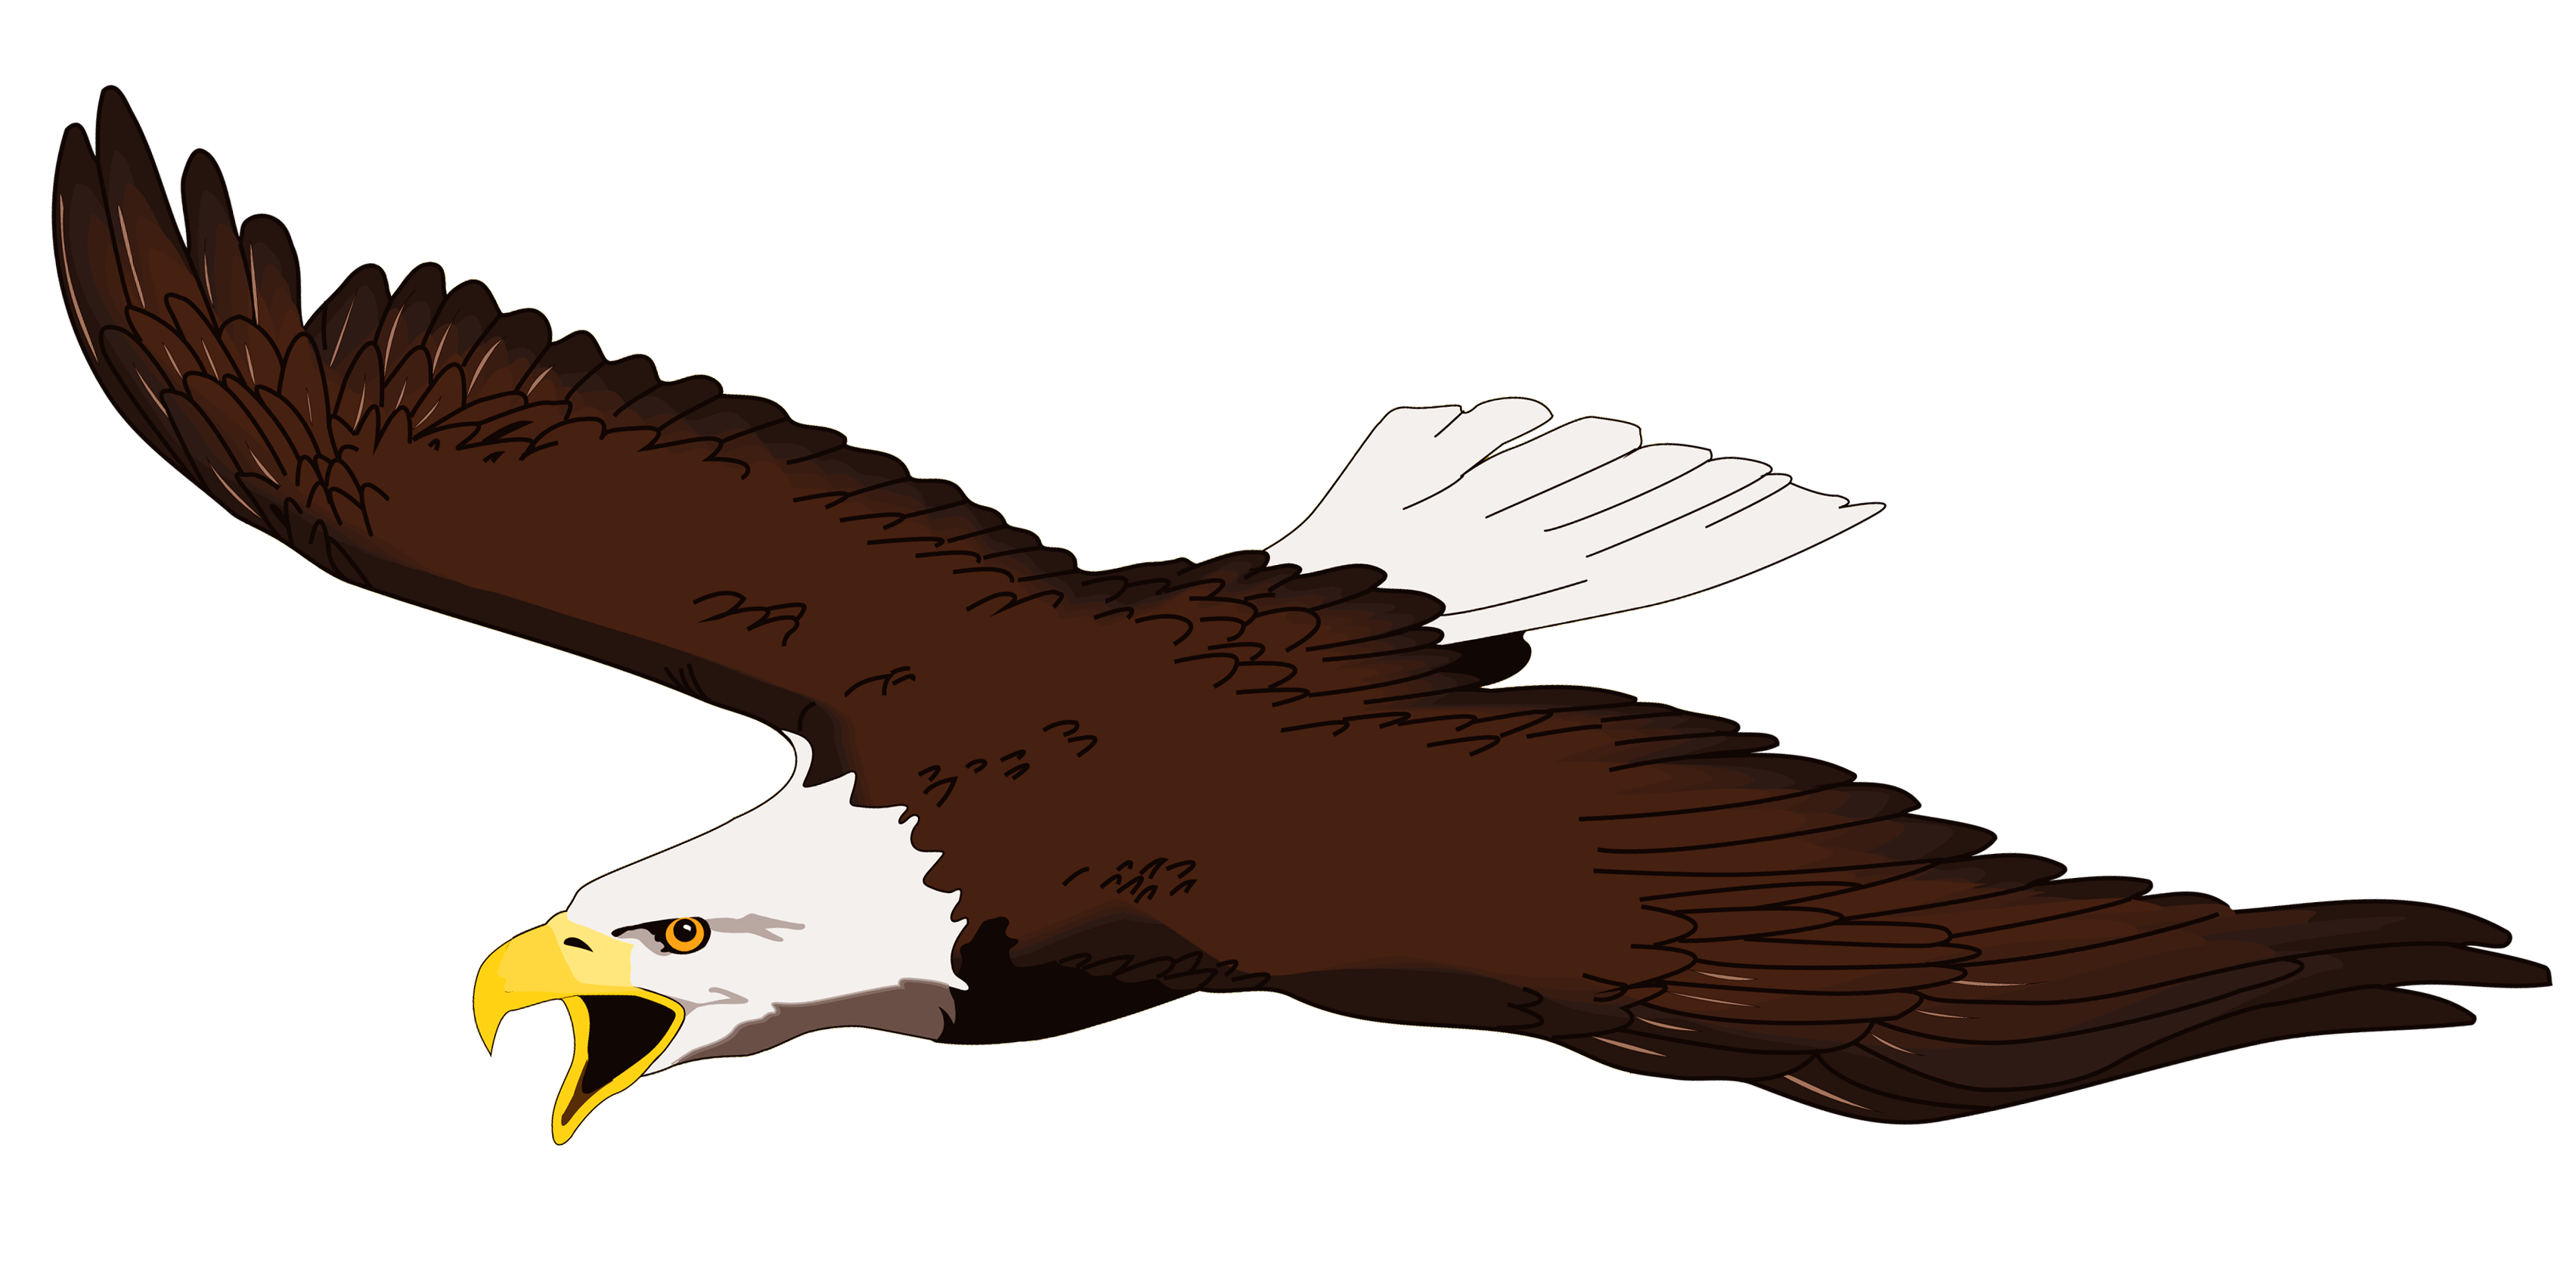 White-tailed Eagle clipart #2, Download drawings